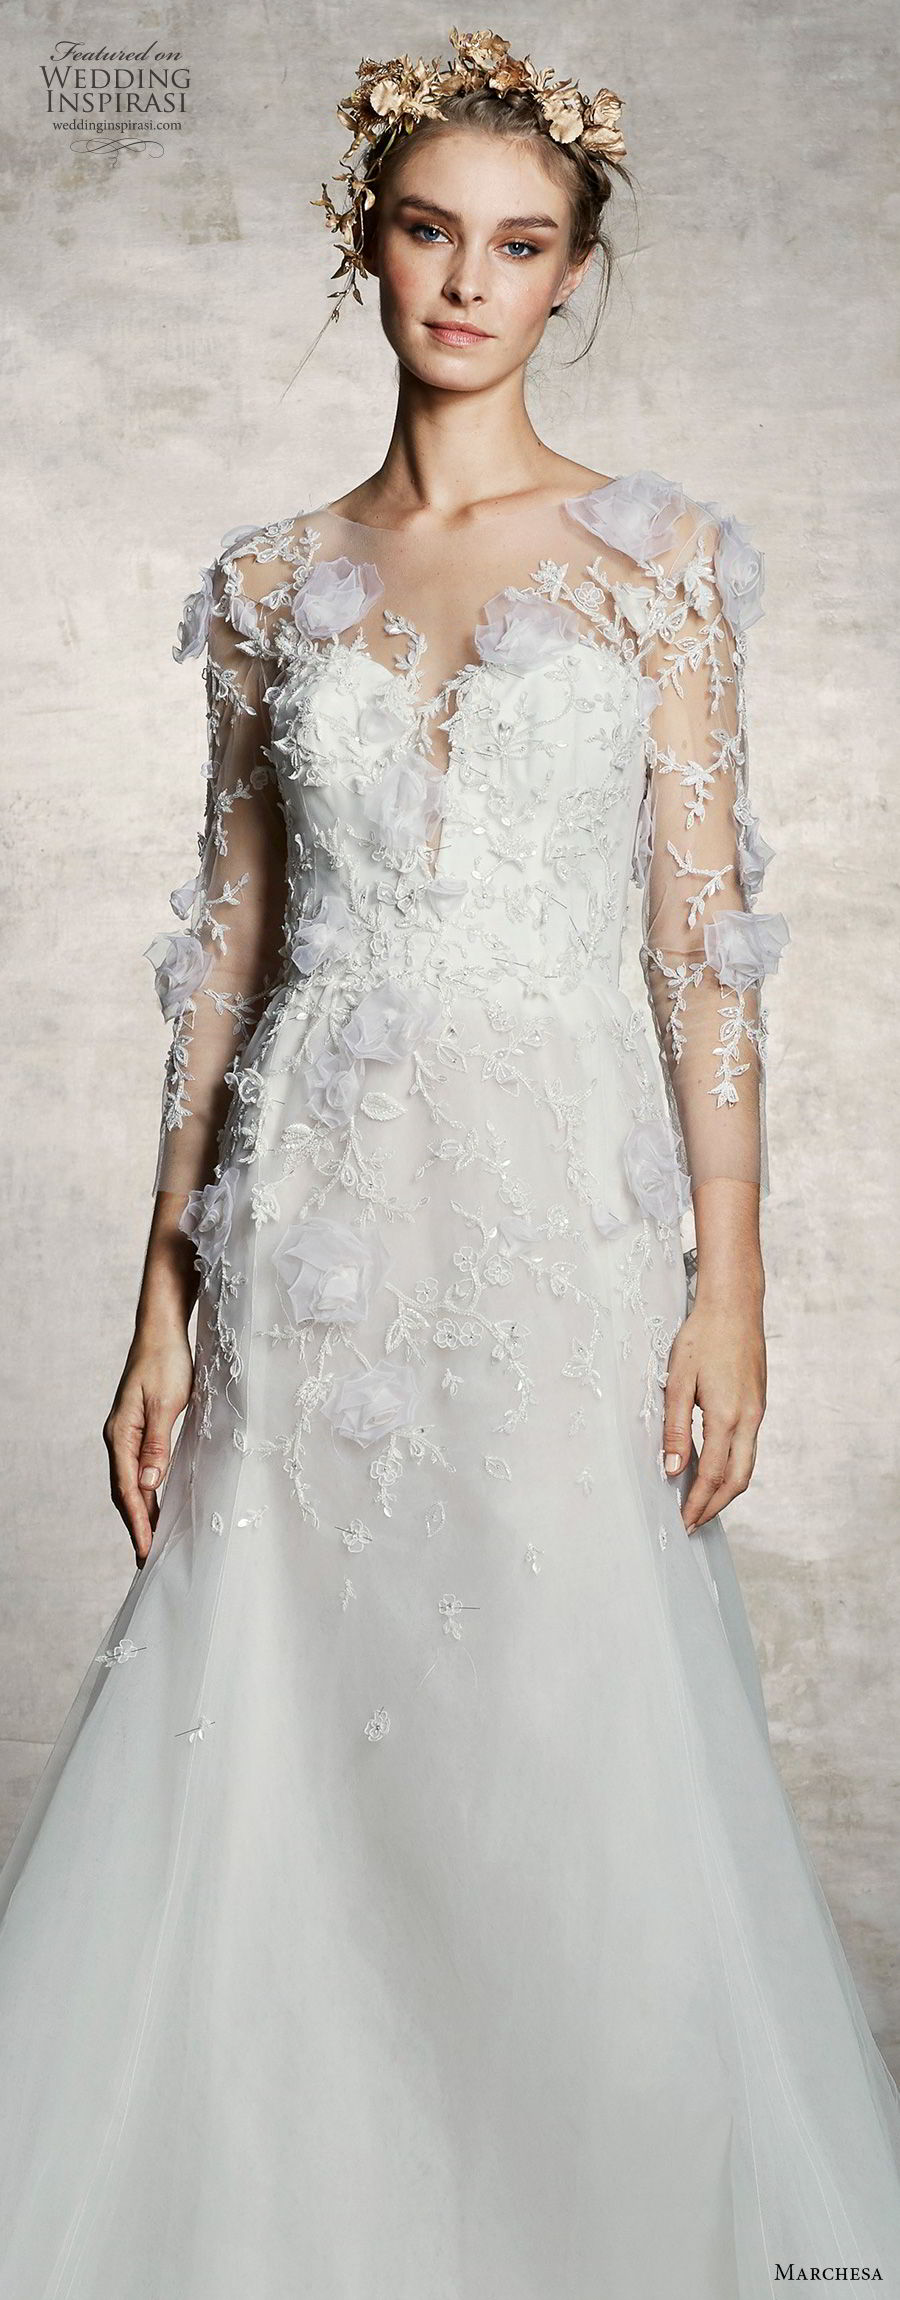 marchesa spring 2019 bridal three quarter sleeves plunging sweetheart neckline heavily embellished bodice romantic a  line wedding dress (9) lv